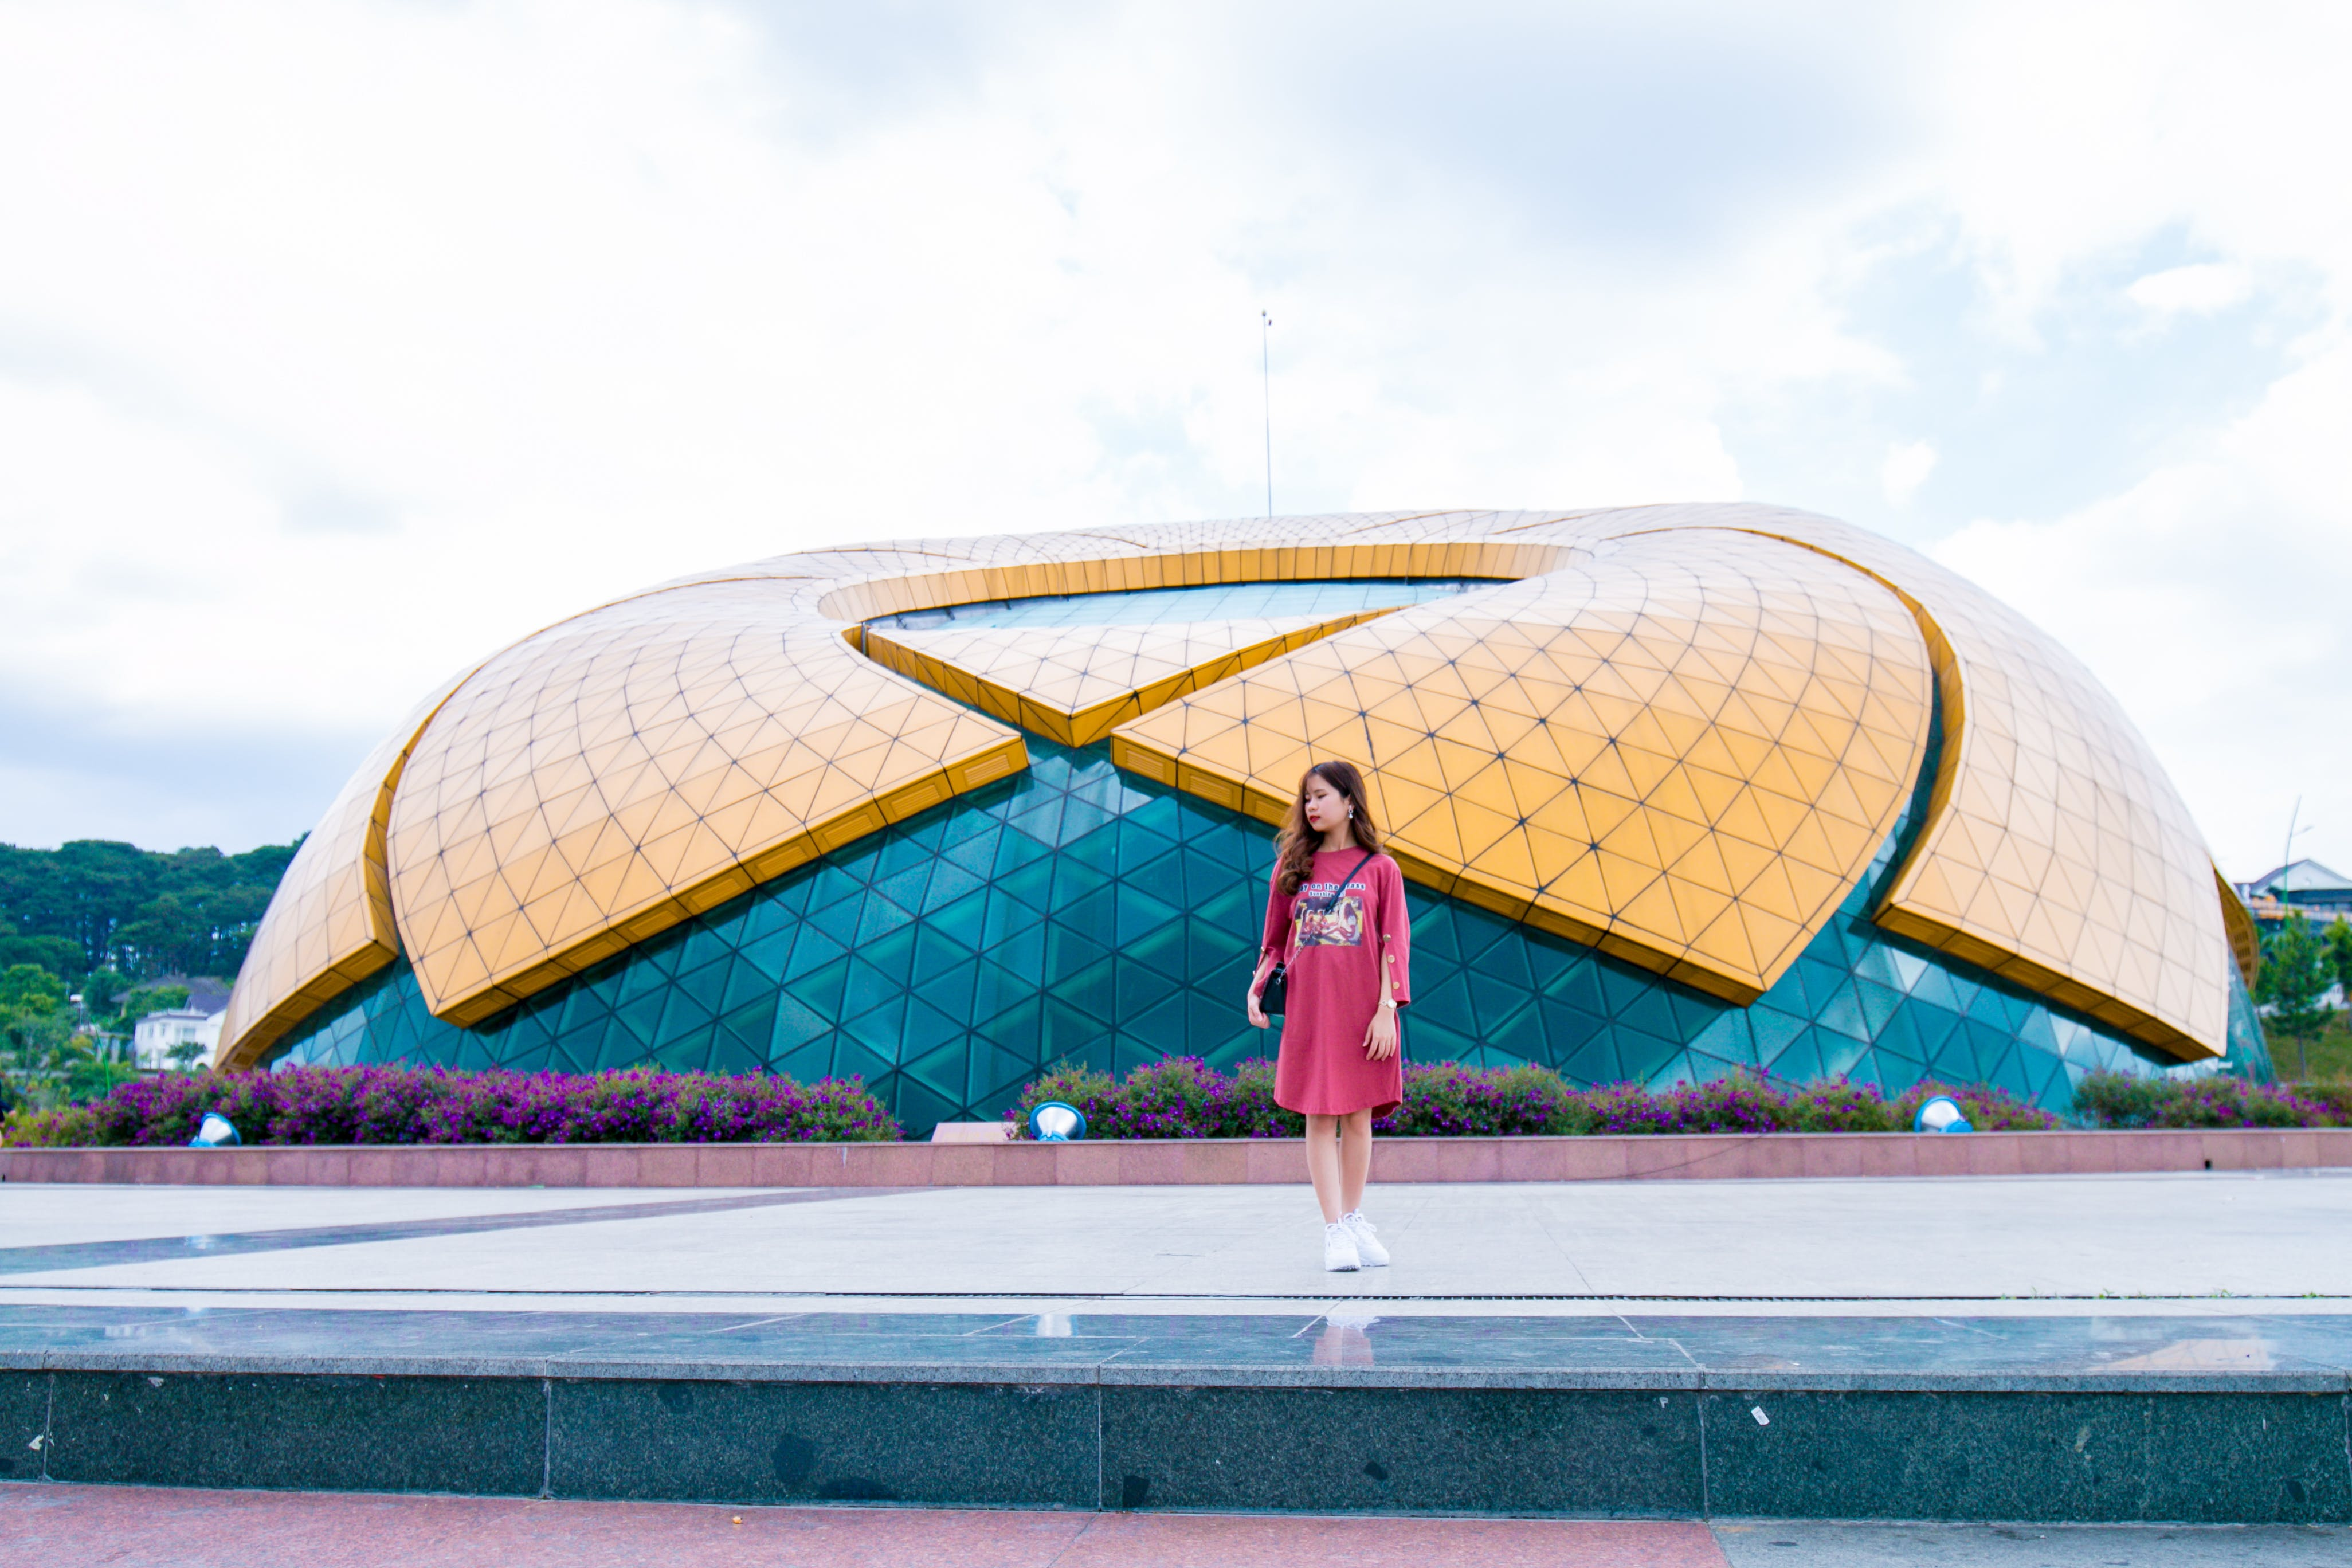 Woman Standing Near Blue and Yellow Dome Under White Cloudy Skies at Daytime